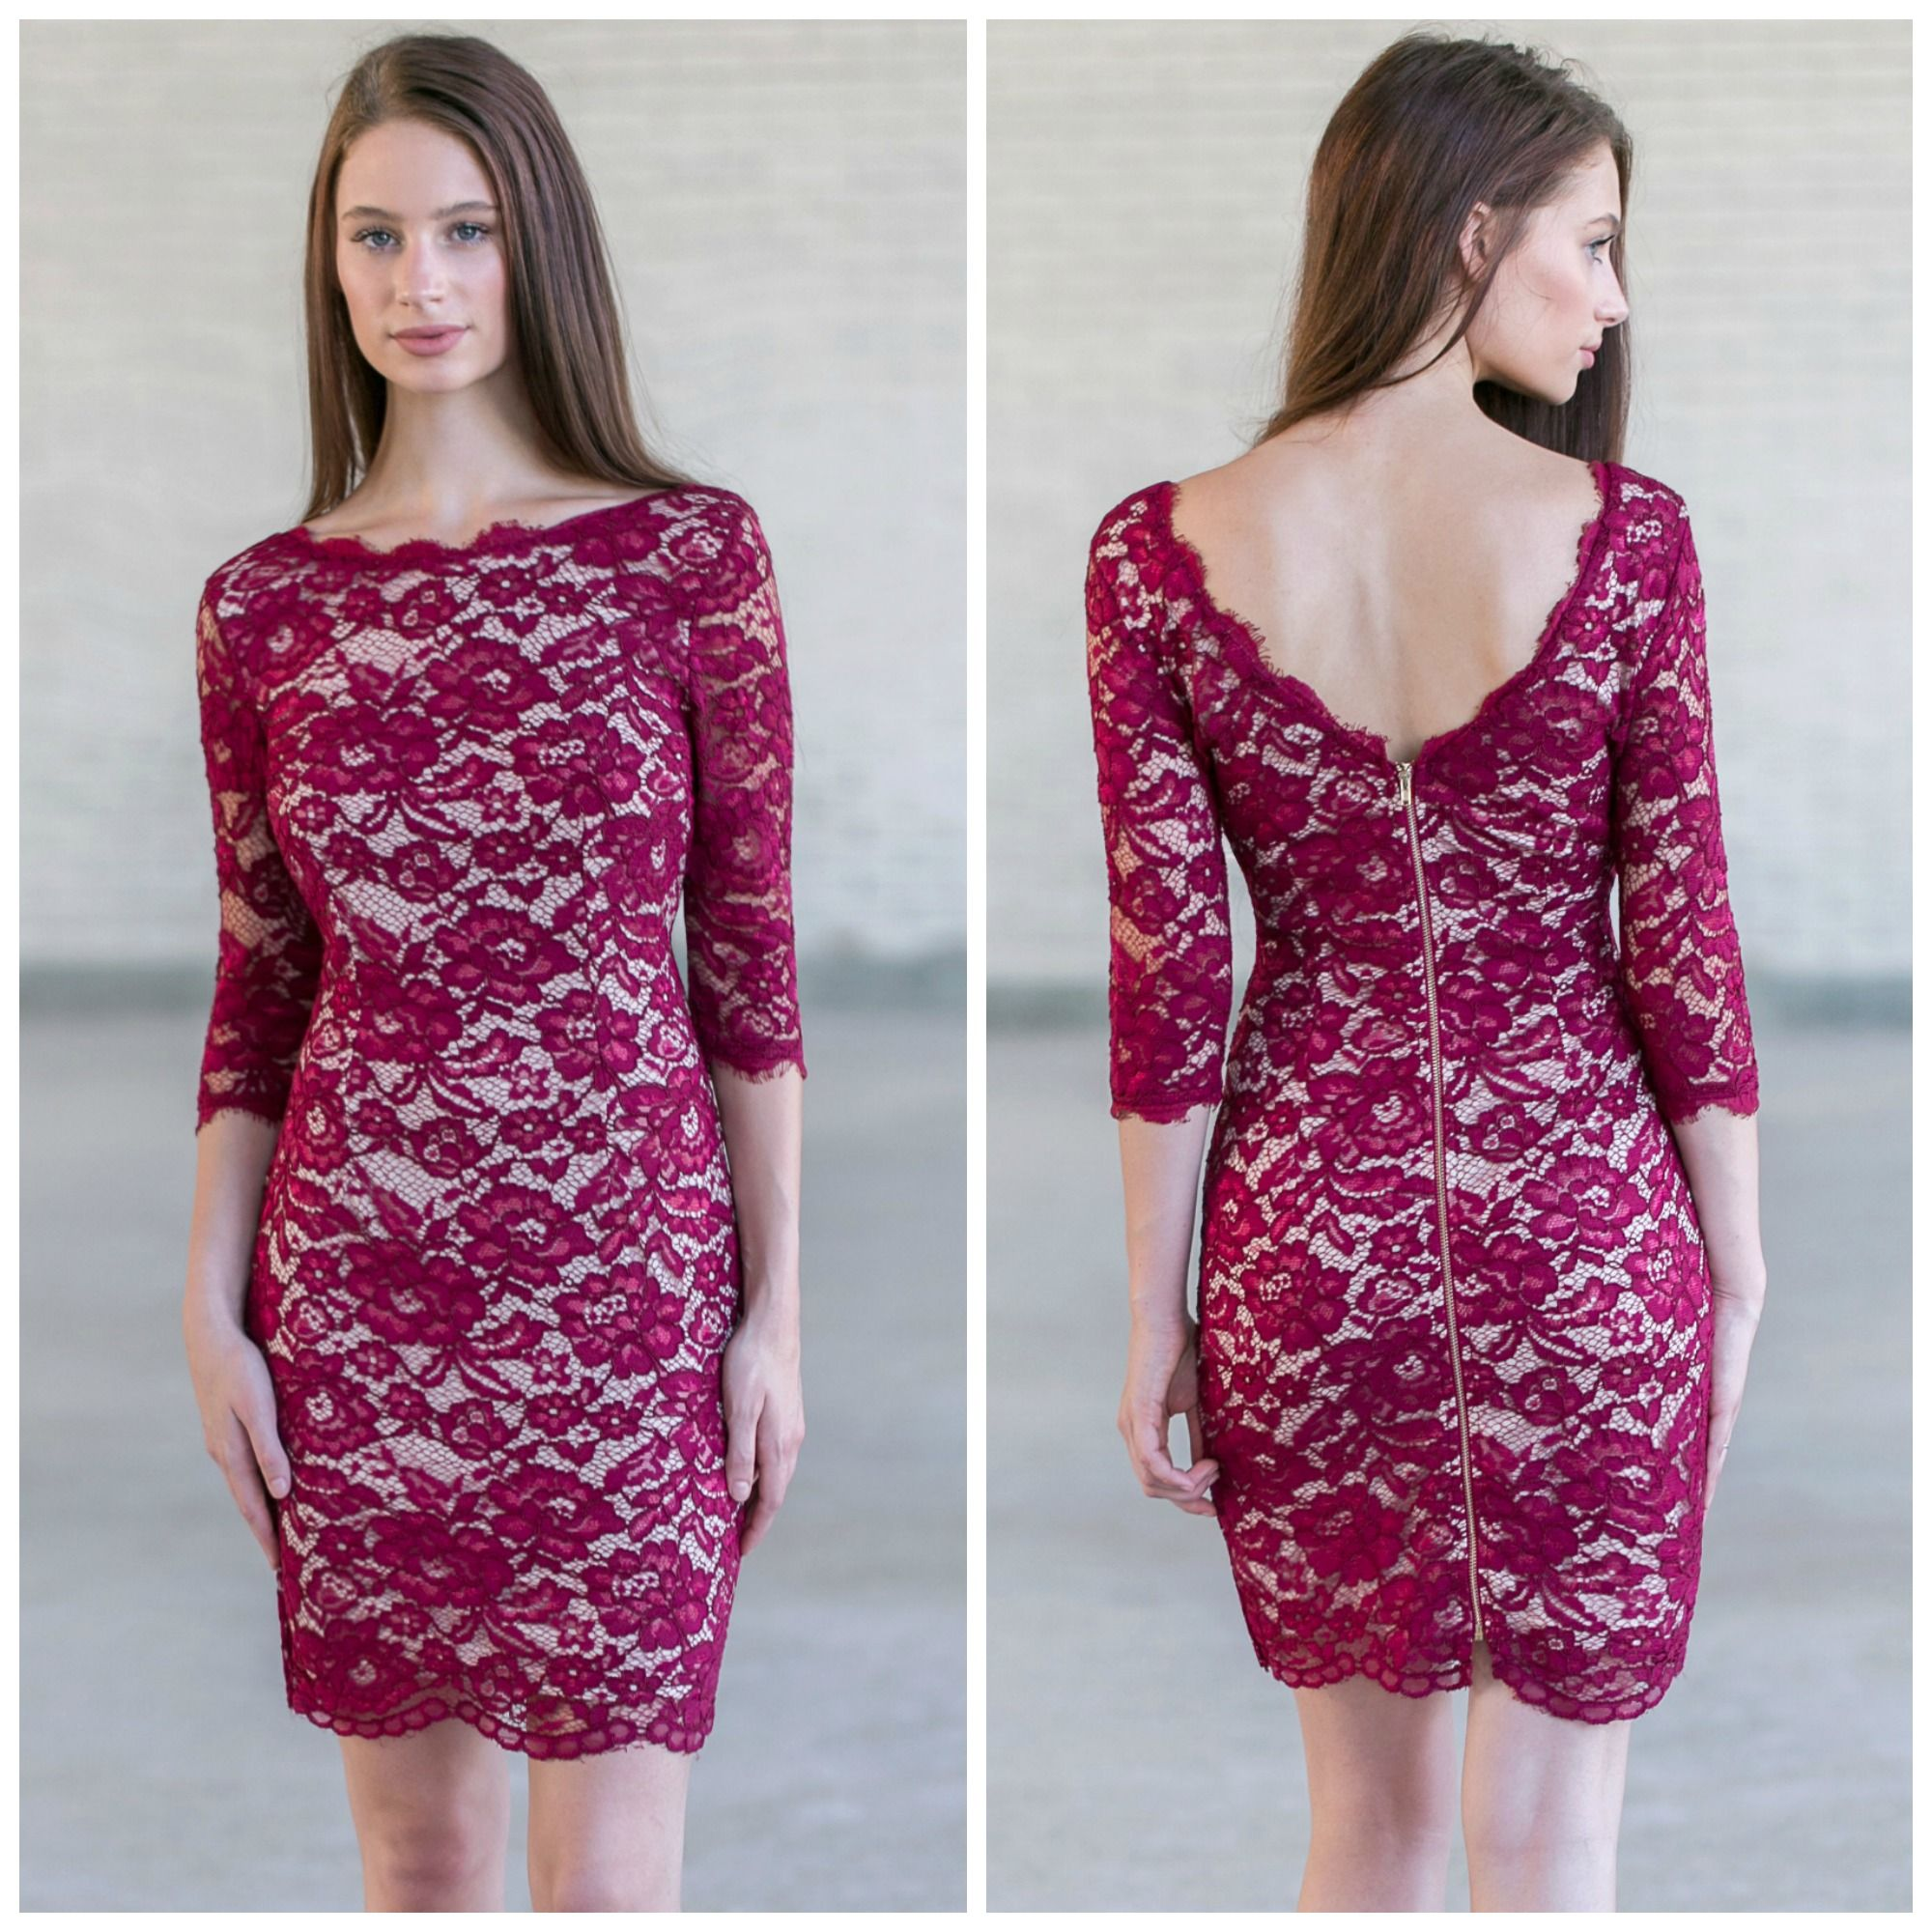 This wine lace dress looks perfect paired with beige heels